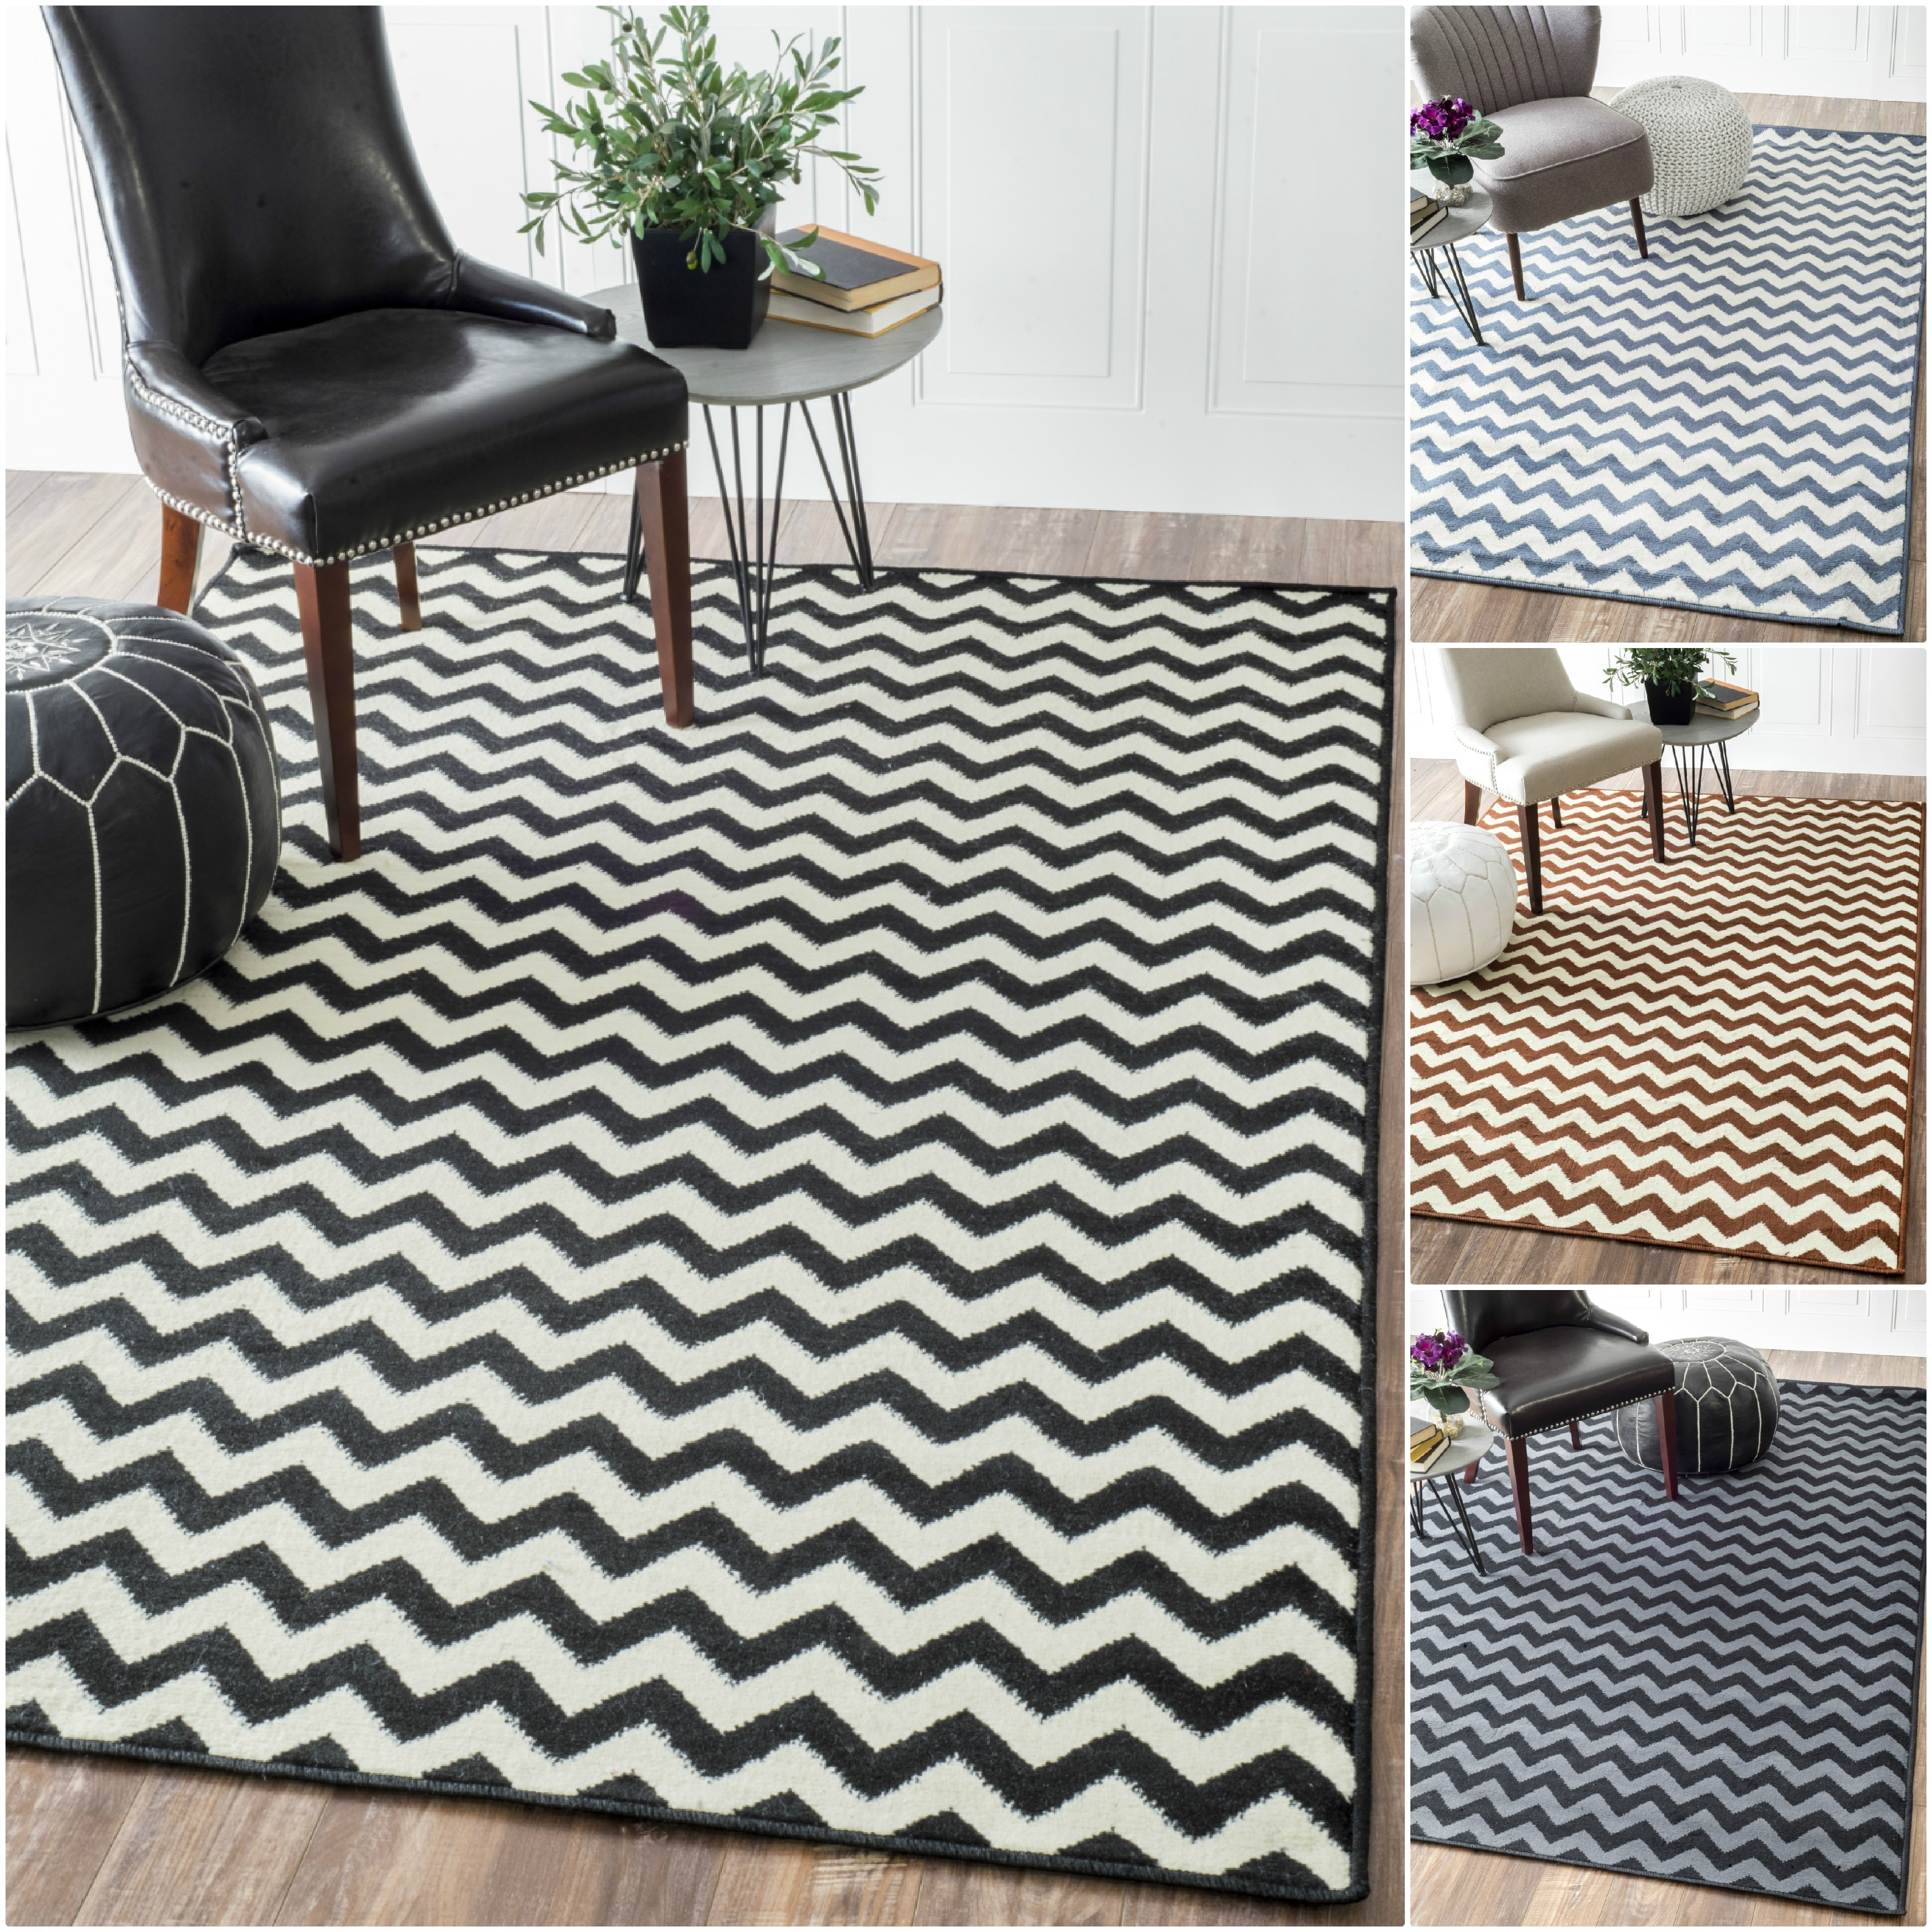 Williamsburg Bedford Chevron Zebra Rug (5' x 8')